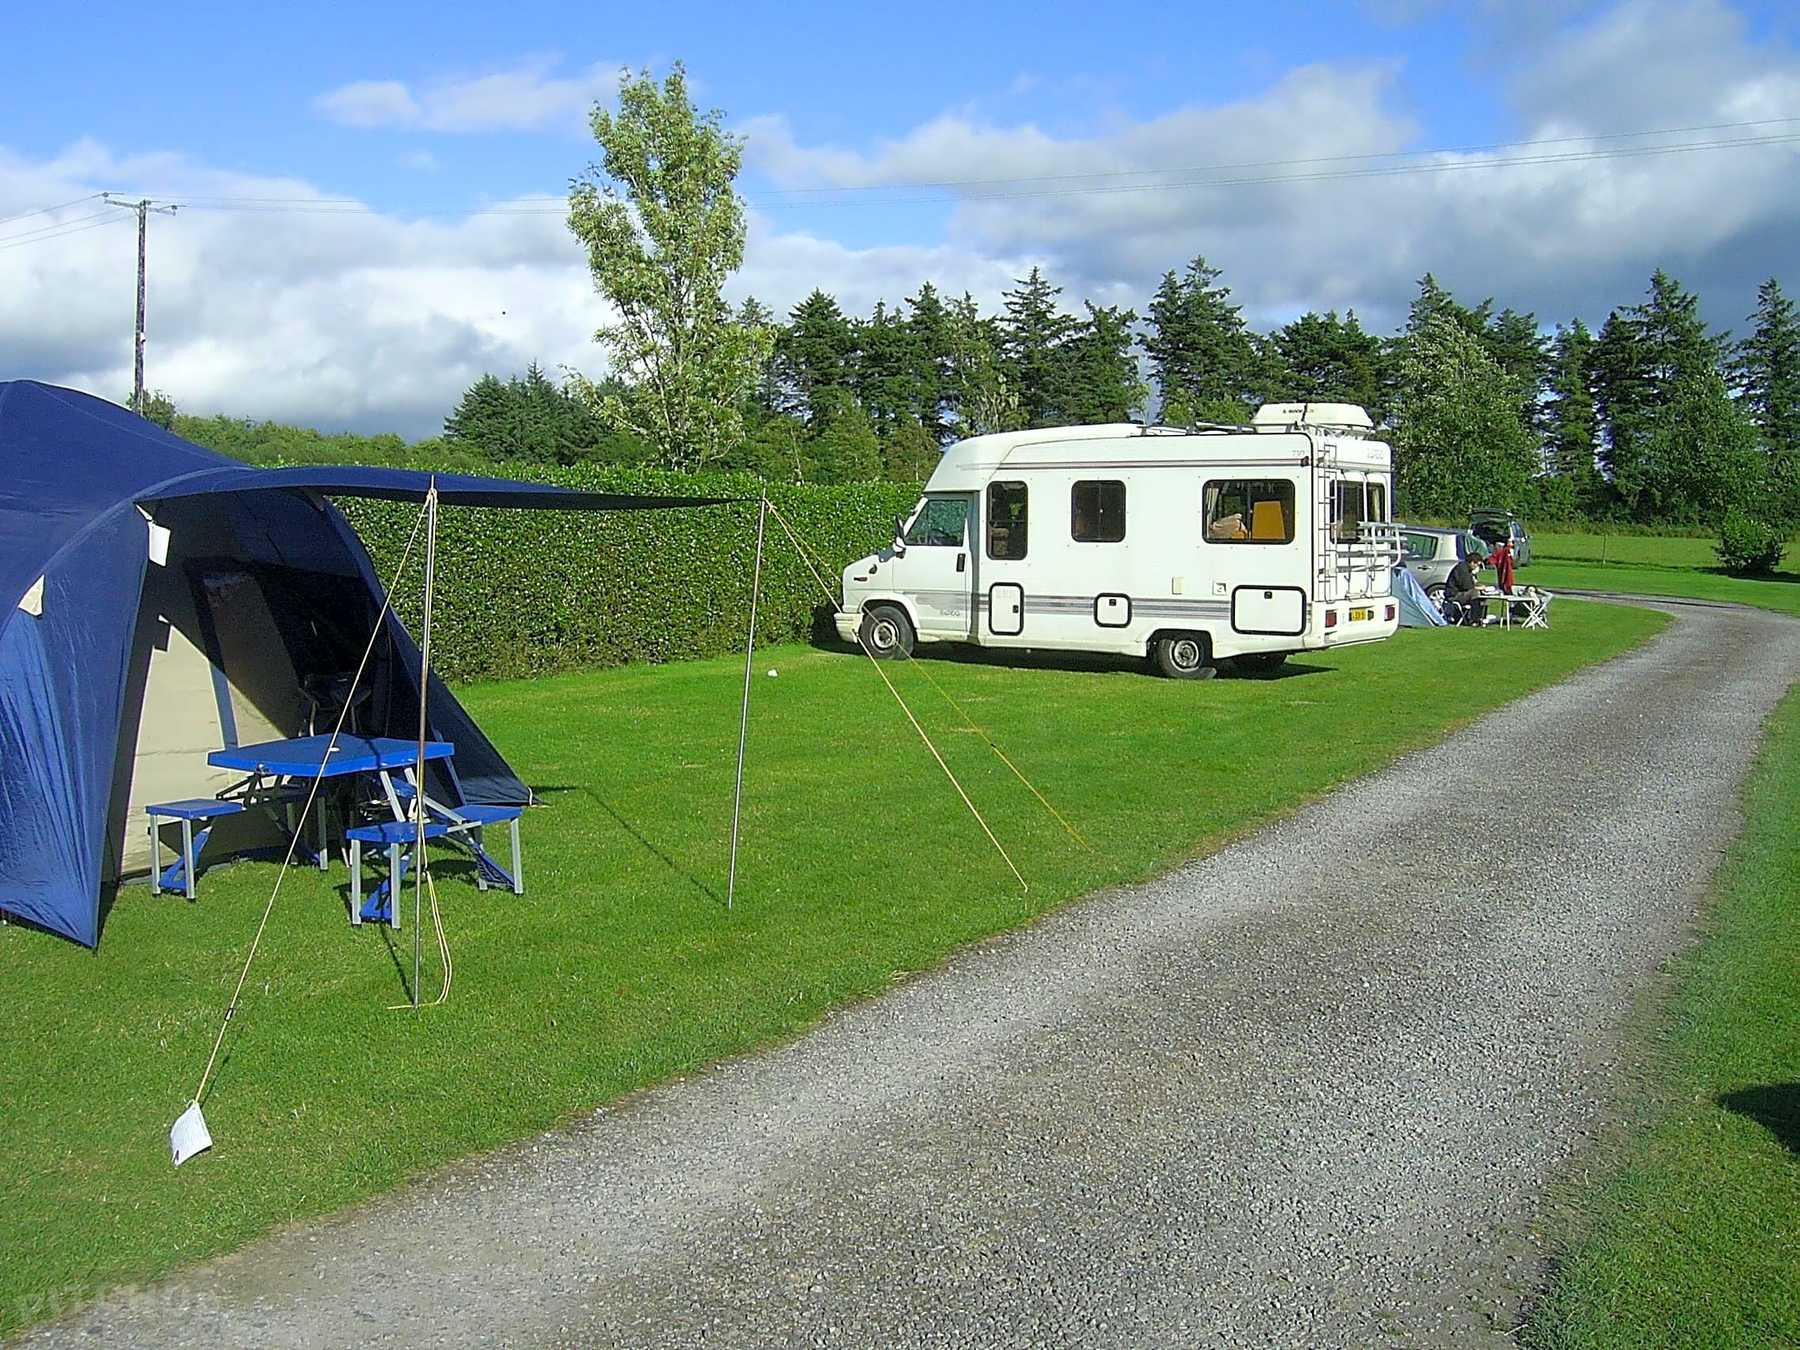 Campgrounds and RV parks in Republic of Ireland - Pitchup